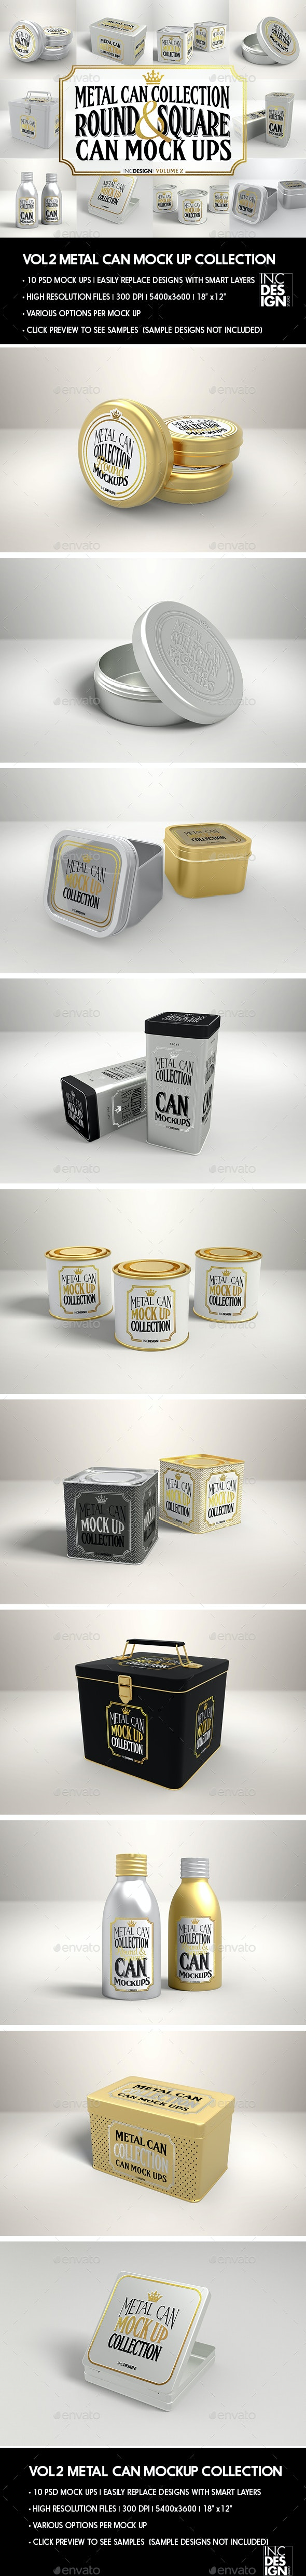 Metal Tin Can MockUp Collection Volume 2 - Packaging Product Mock-Ups